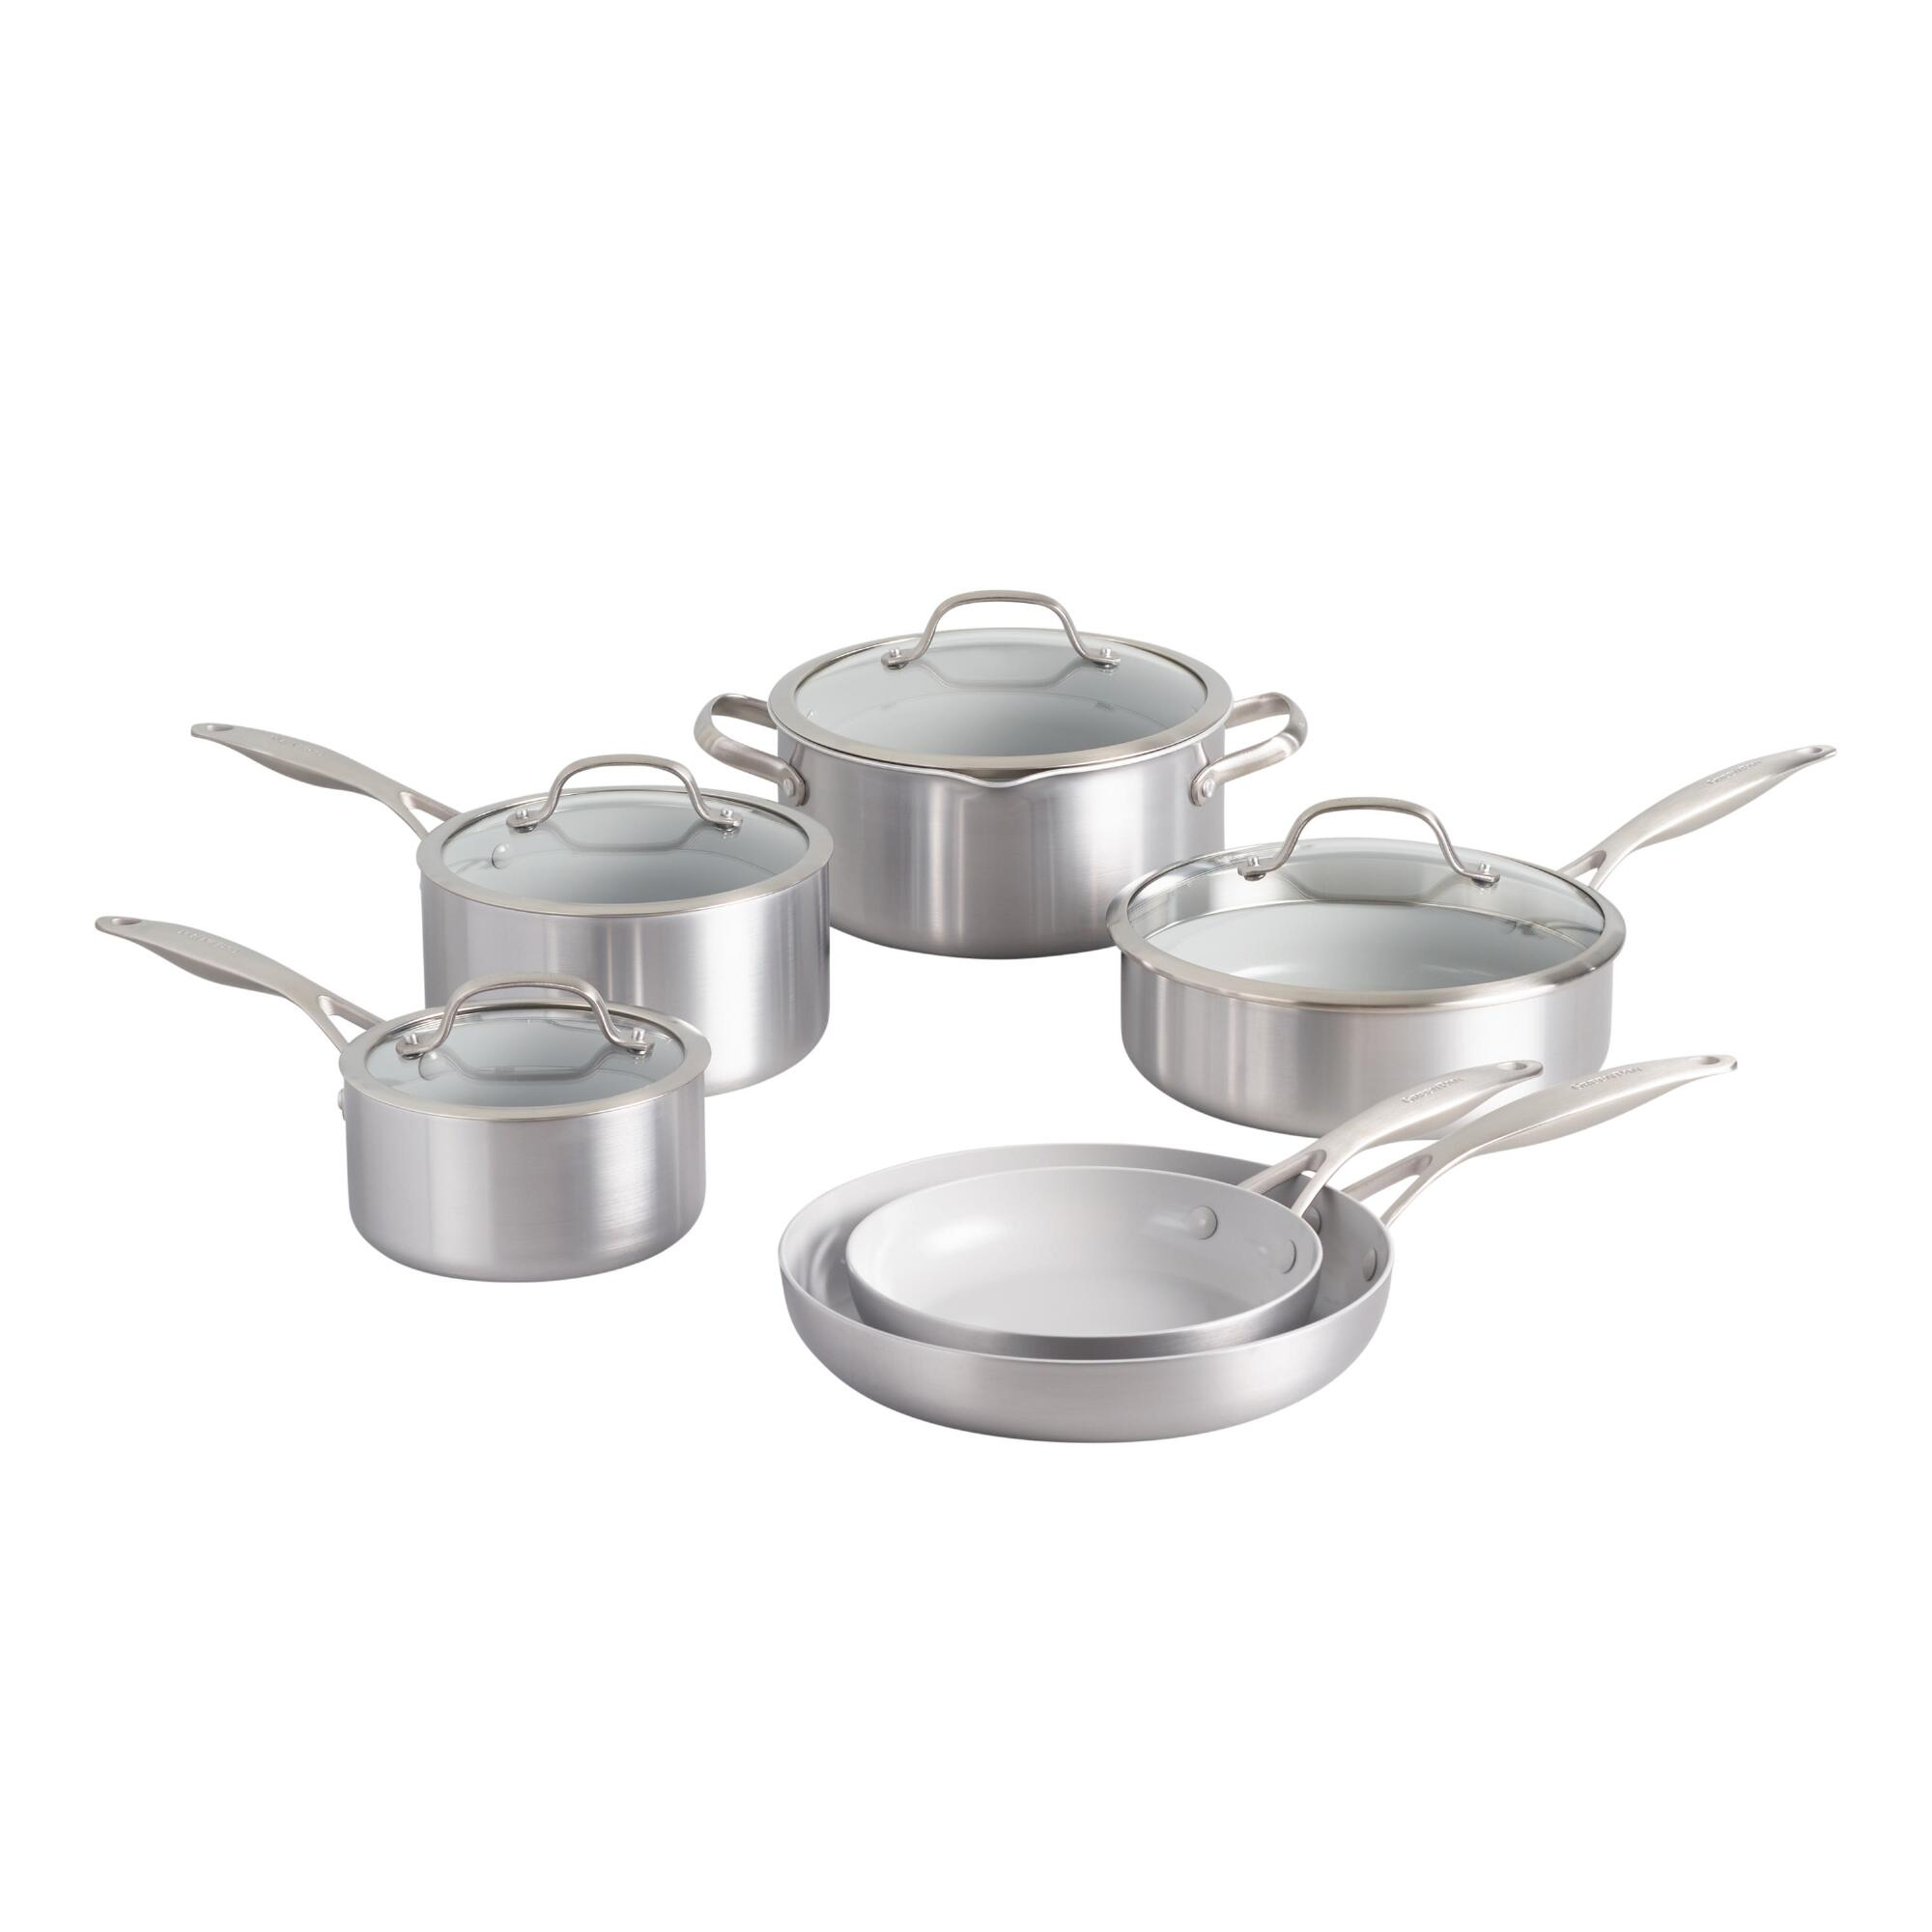 GreenPan Venice Pro 10 Piece Nonstick Ceramic Cookware Set by World Market